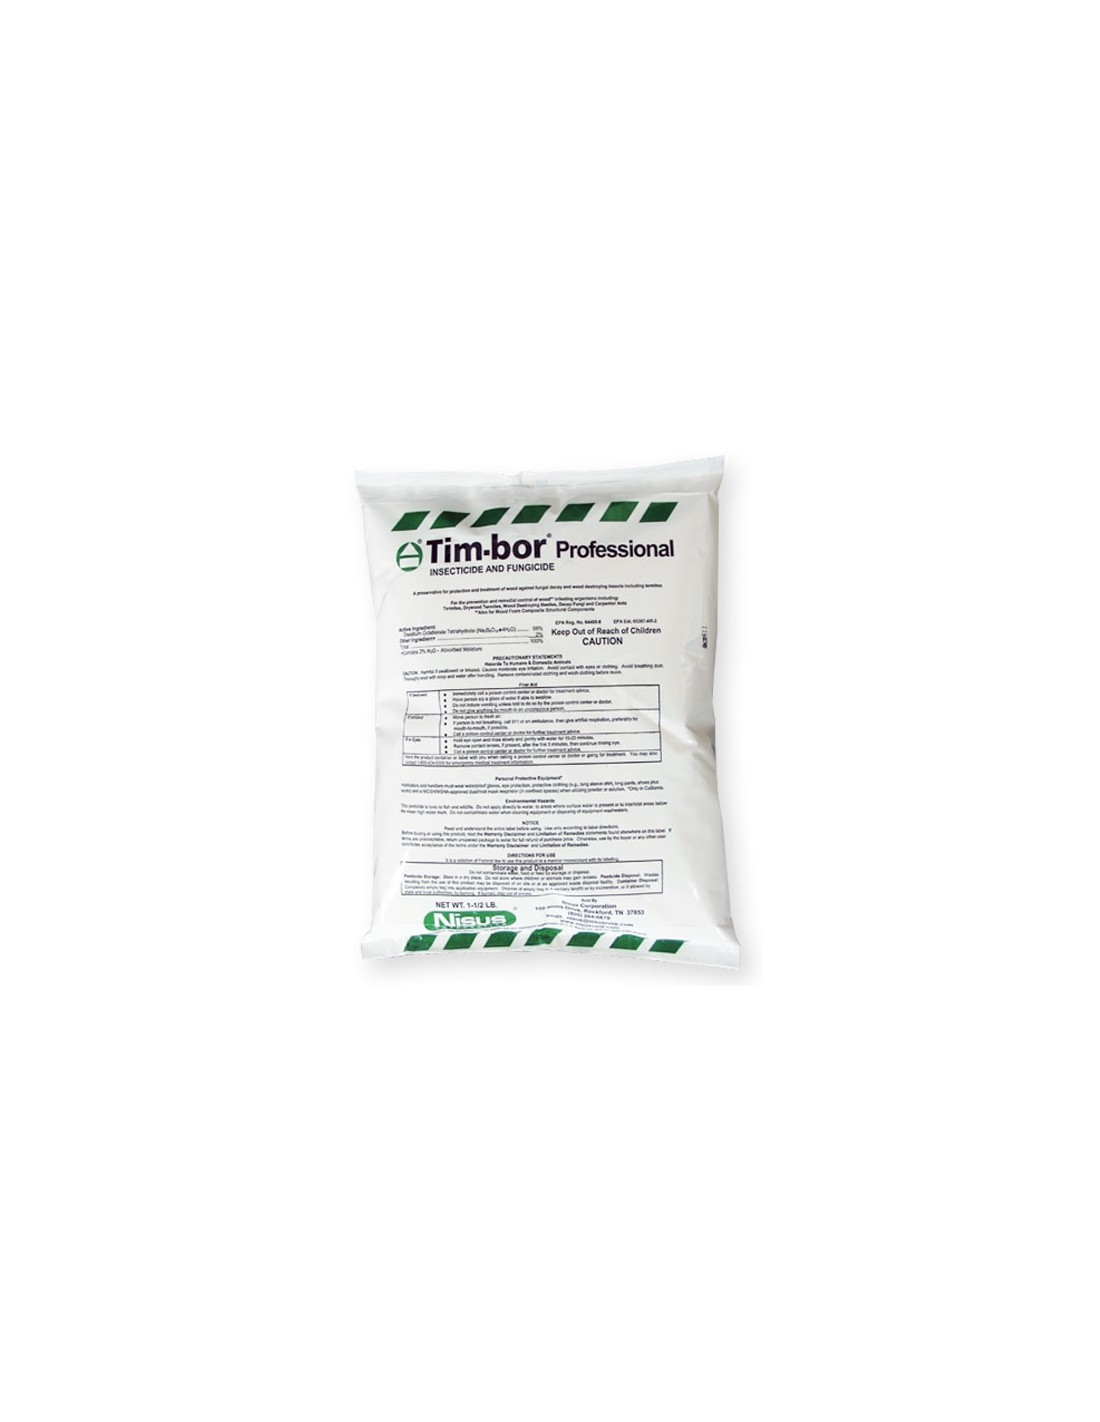 Tim bor Professional Insecticide and Fungicide Dust 1.5lb